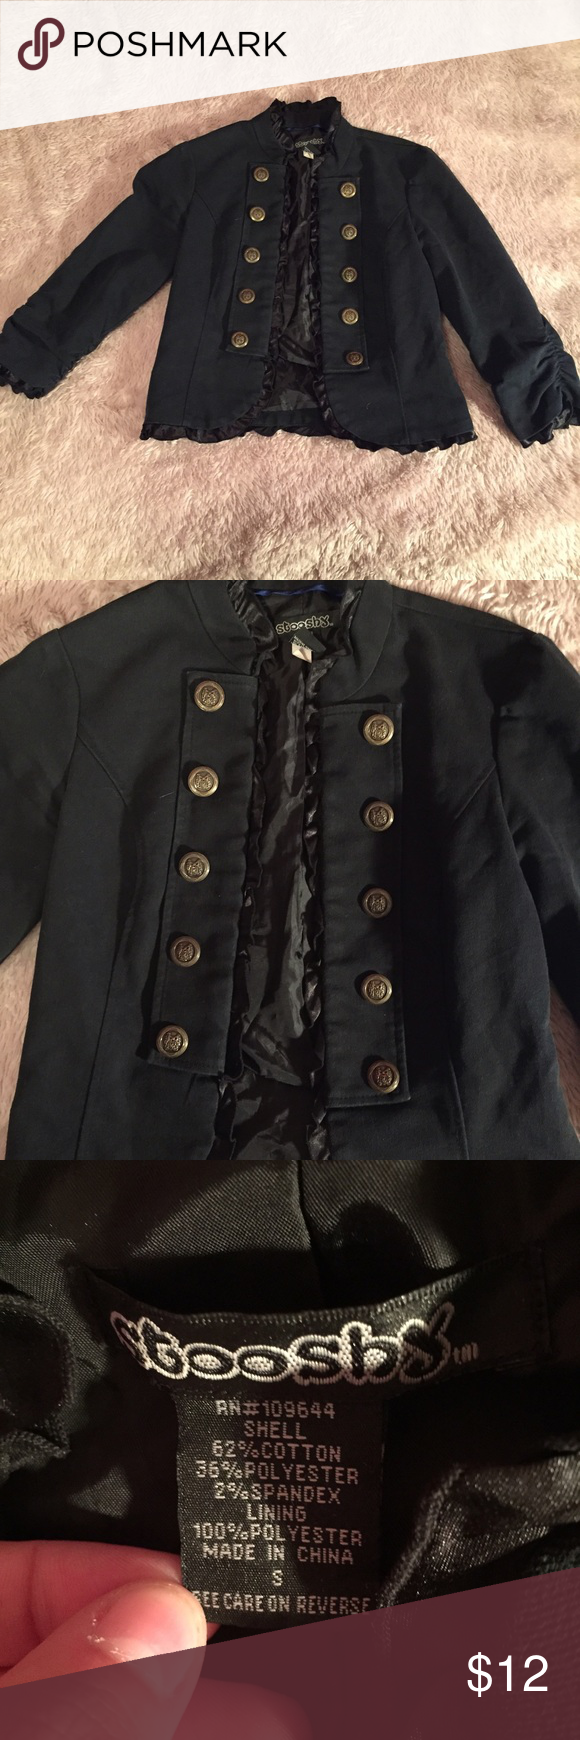 Lightweight jacket Lightweight dressy jacket in good used condition. Does not actually button, the buttons are just for decoration. Size small. 62% cotton, 36% polyester, 2% spandex stooshy Jackets & Coats Utility Jackets